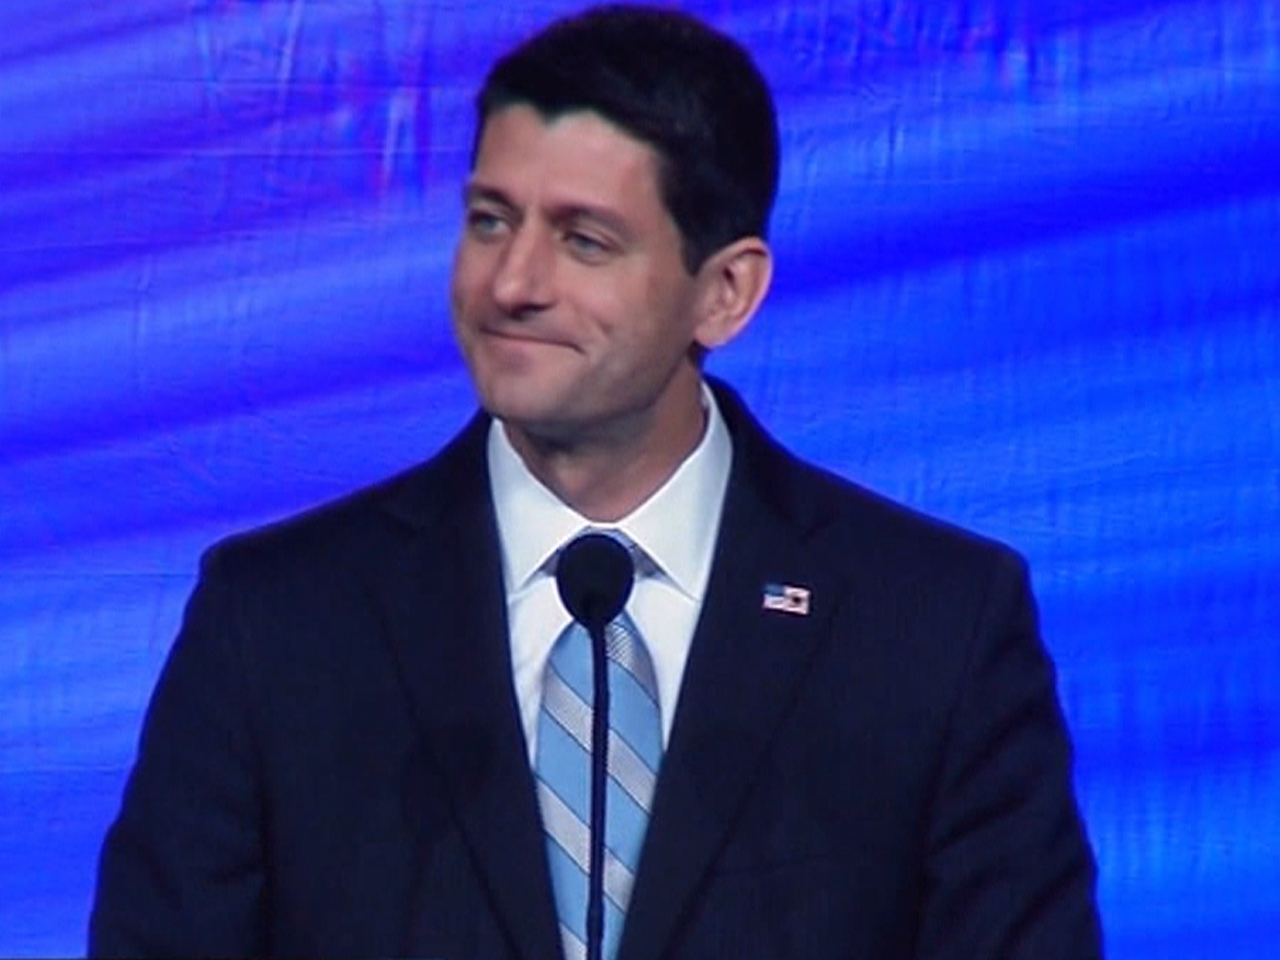 Paul Ryan: No Country for Old Men